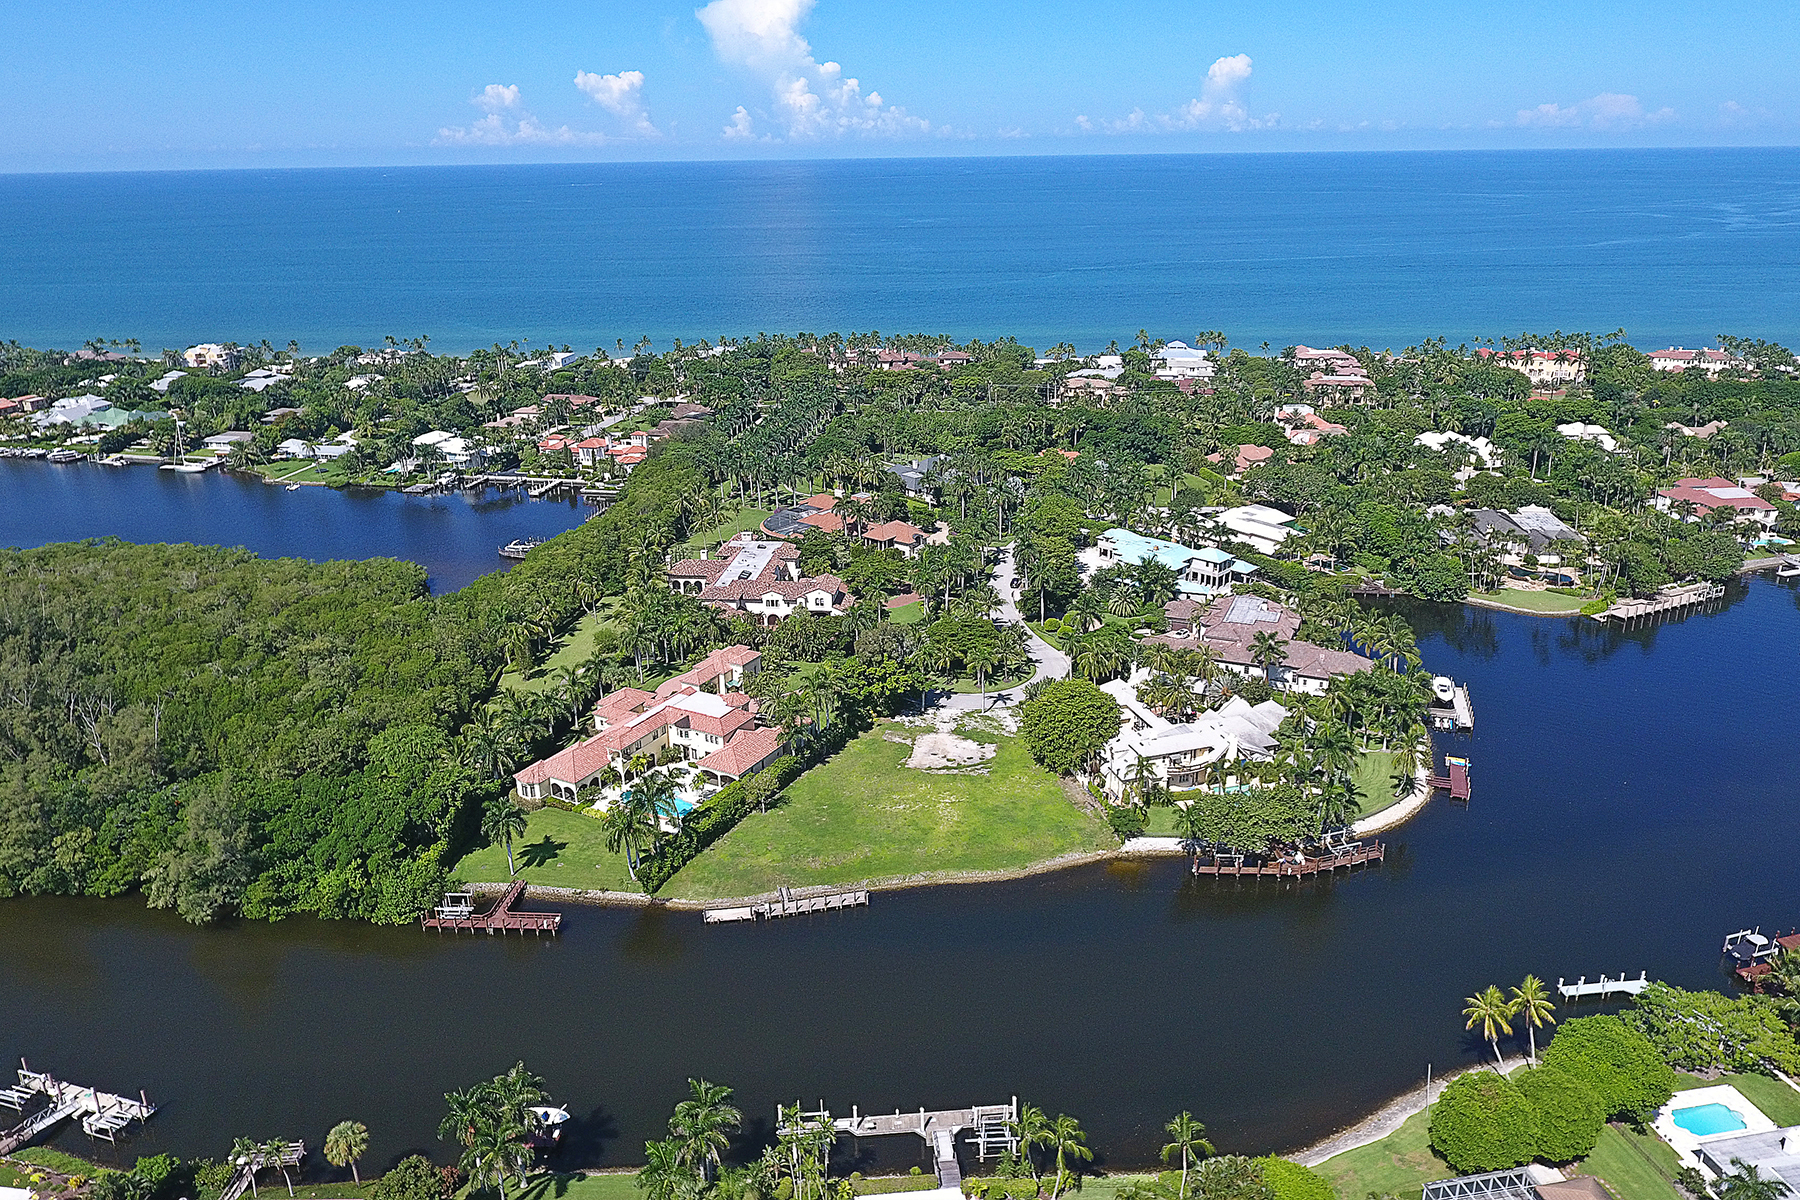 Land for Sale at PORT ROYAL 3300 Green Dolphin Ln, Naples, Florida 34102 United States